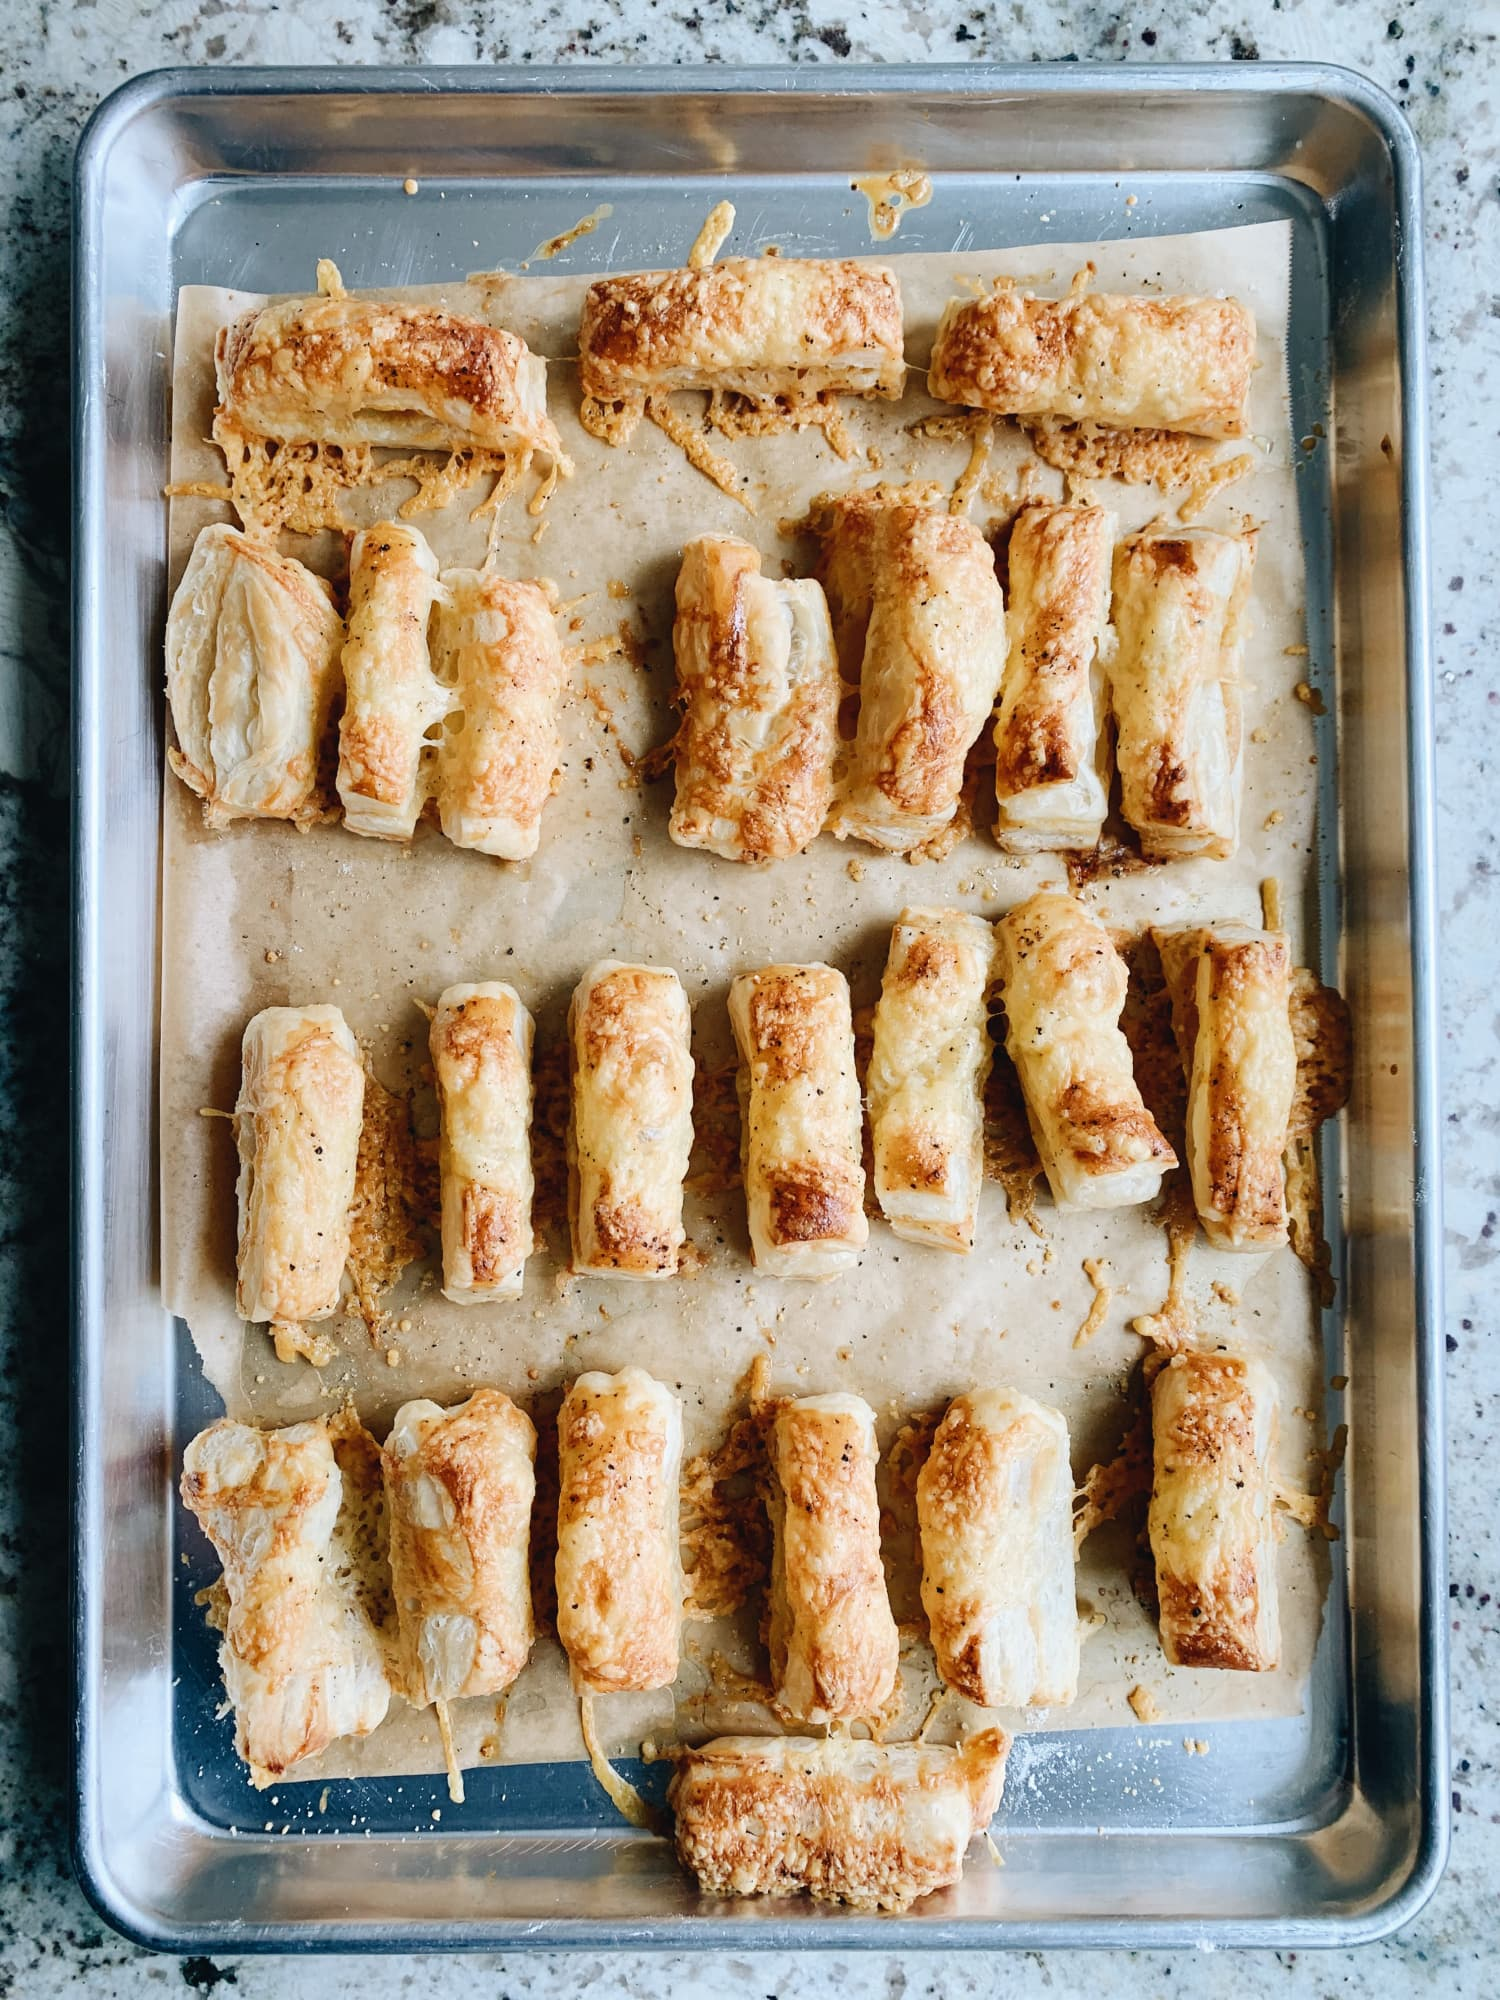 Ina Garten's Cheesy Puff Pastry Batons Are So Good, I've Made Them Every Single Week of Quarantine